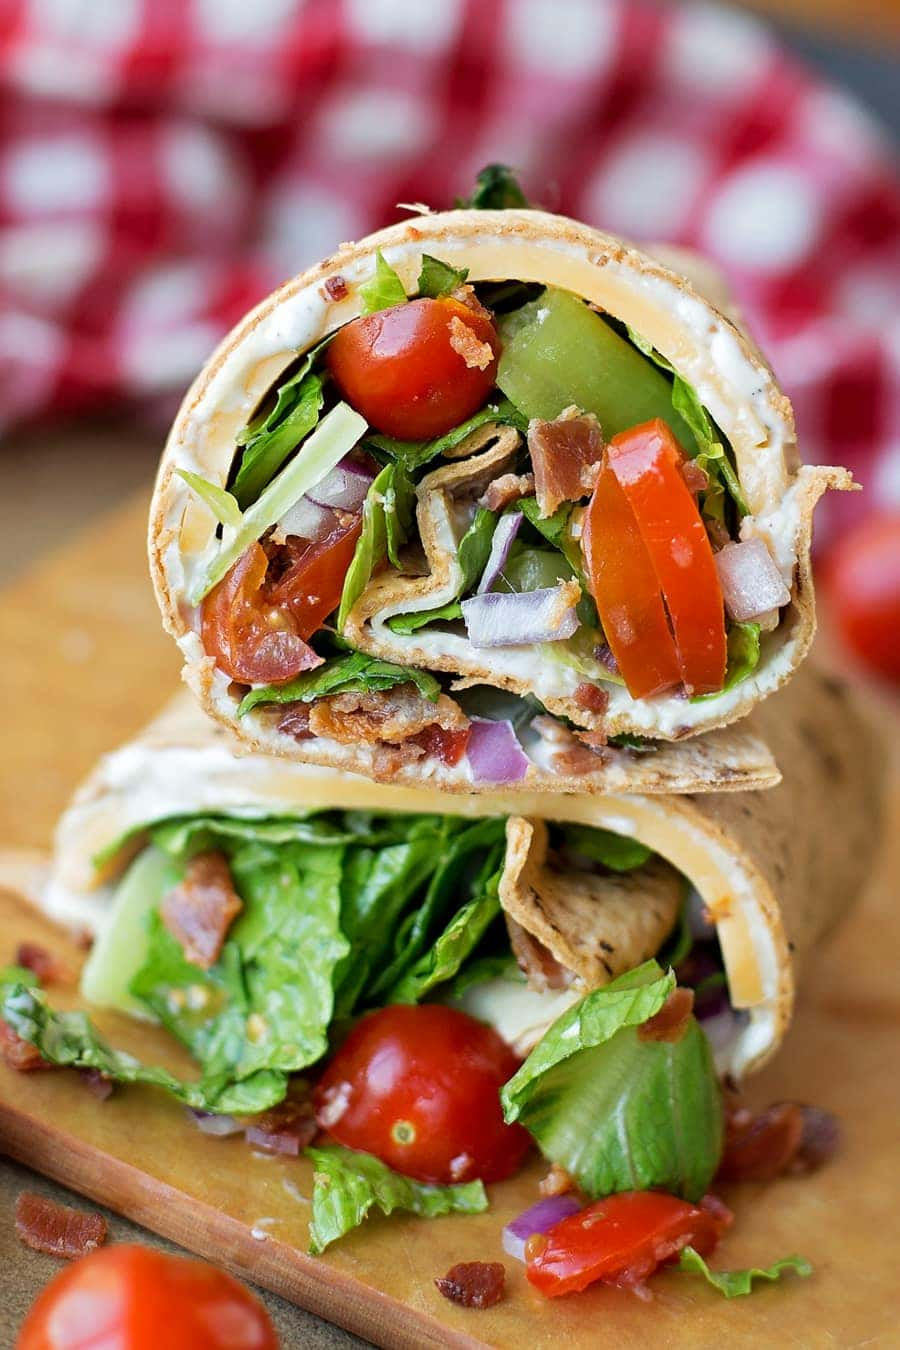 Turkey Bacon Wrap - simple, delicious and perfect for lunch or dinner and is Weight Watchers approved!